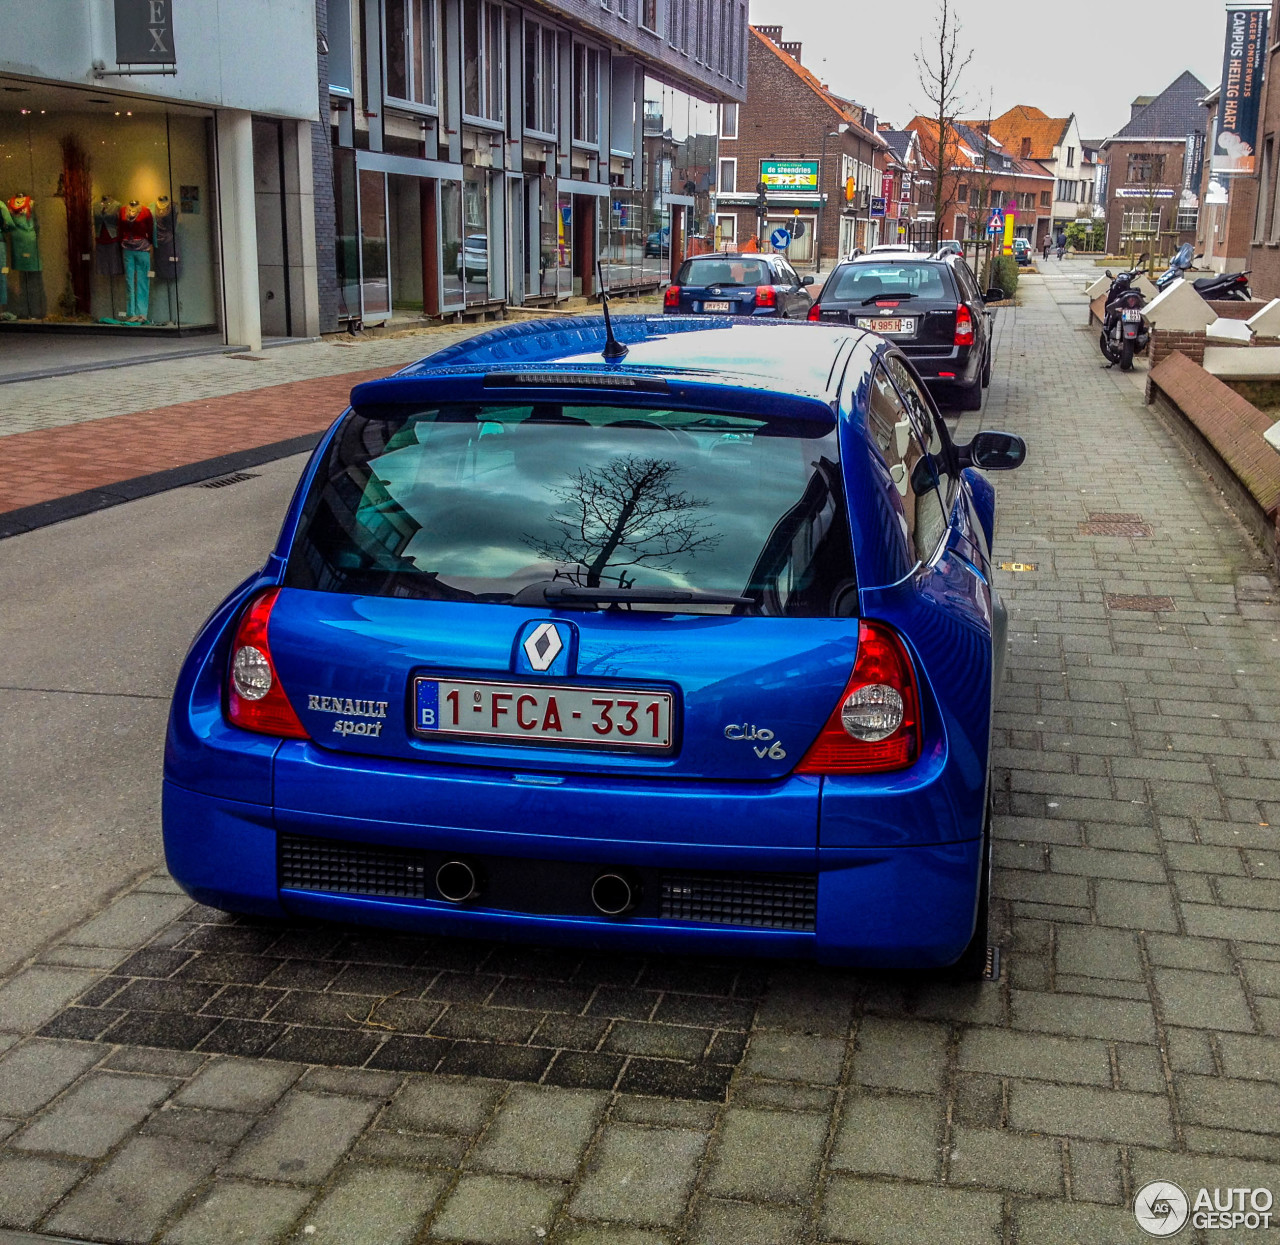 Renault Clio V6: Renault Clio V6 Phase II